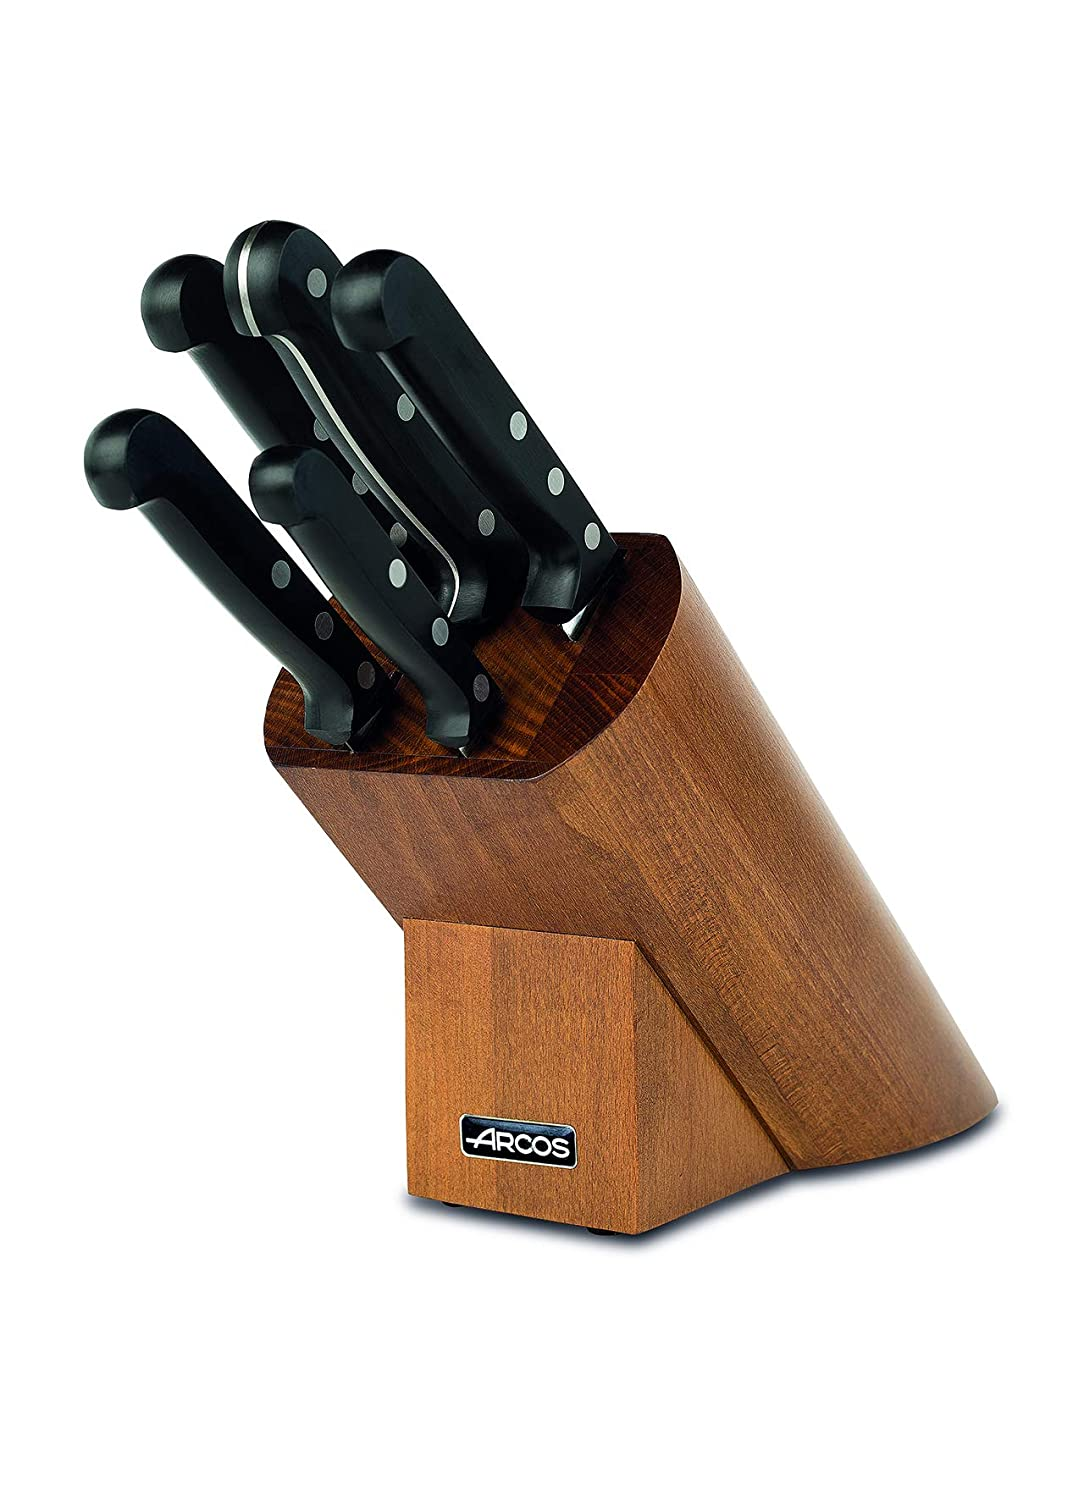 Amazon.com: Arcos 6-Piece Universal Slicing Knife Block Set ...